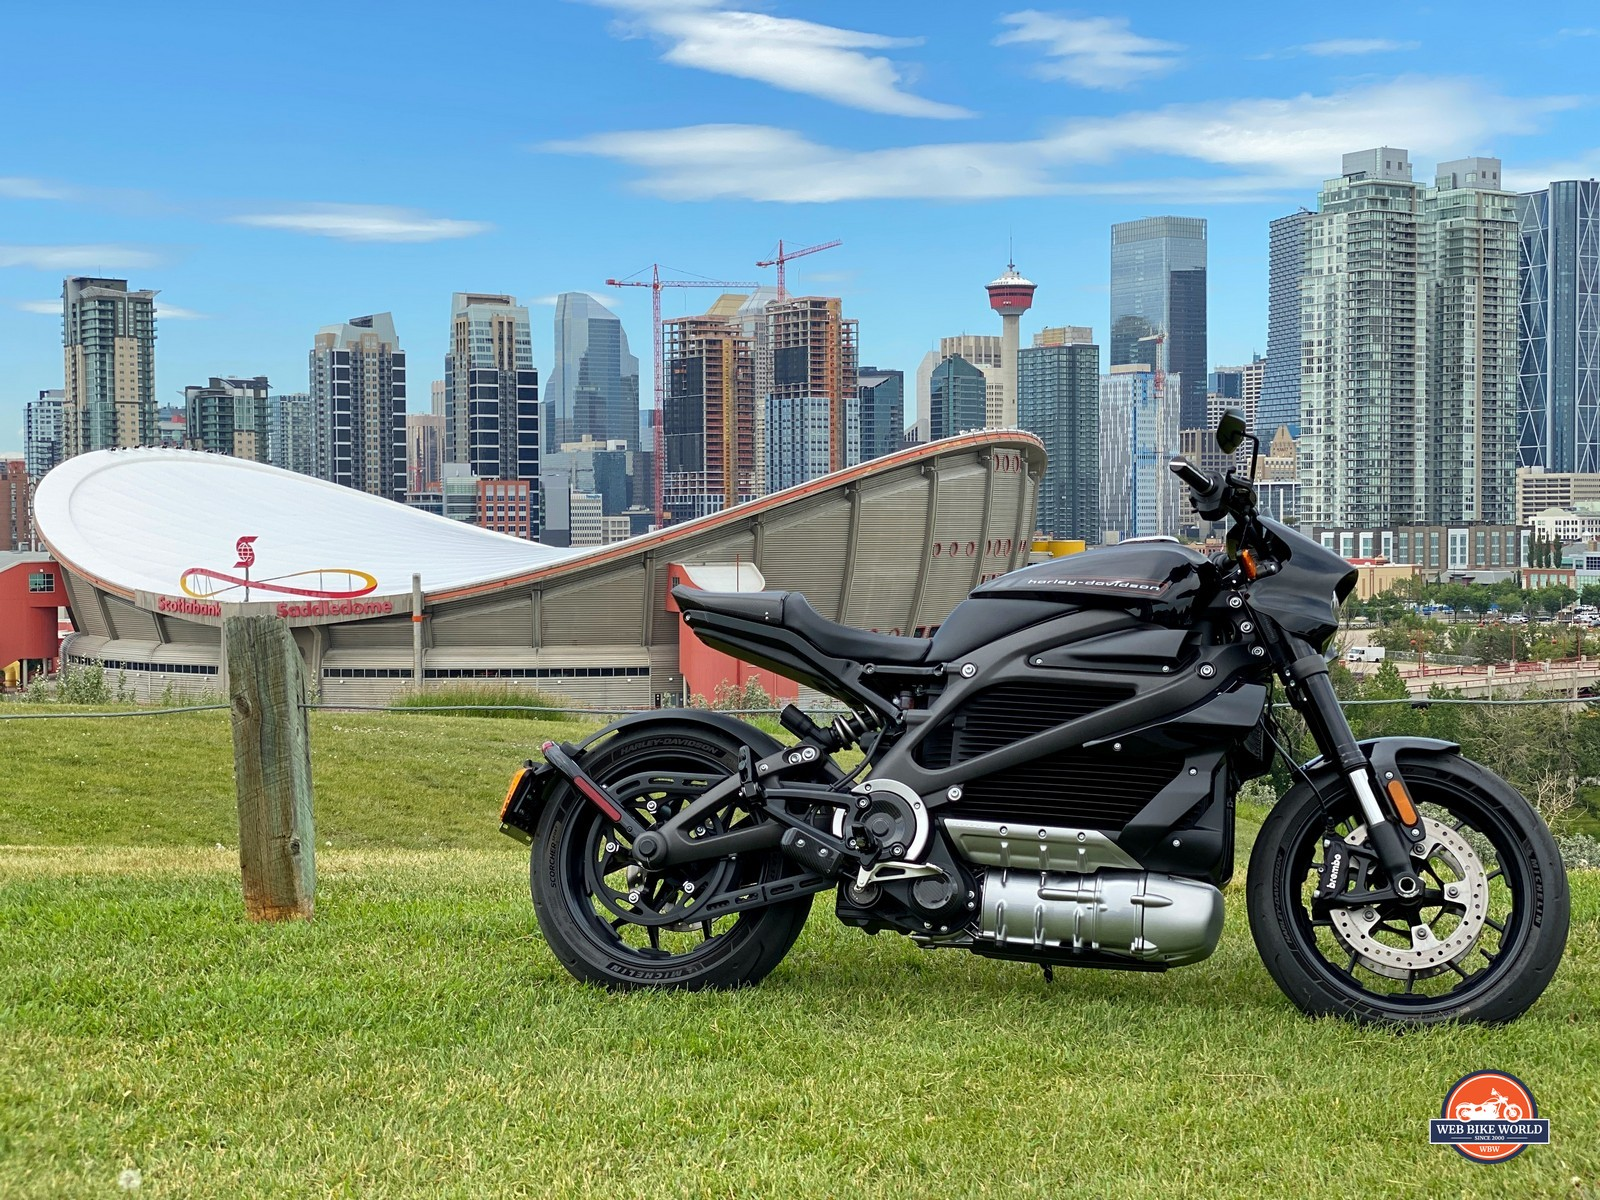 The Harley Davidson LiveWire in front of the Calgary Saddle Dome